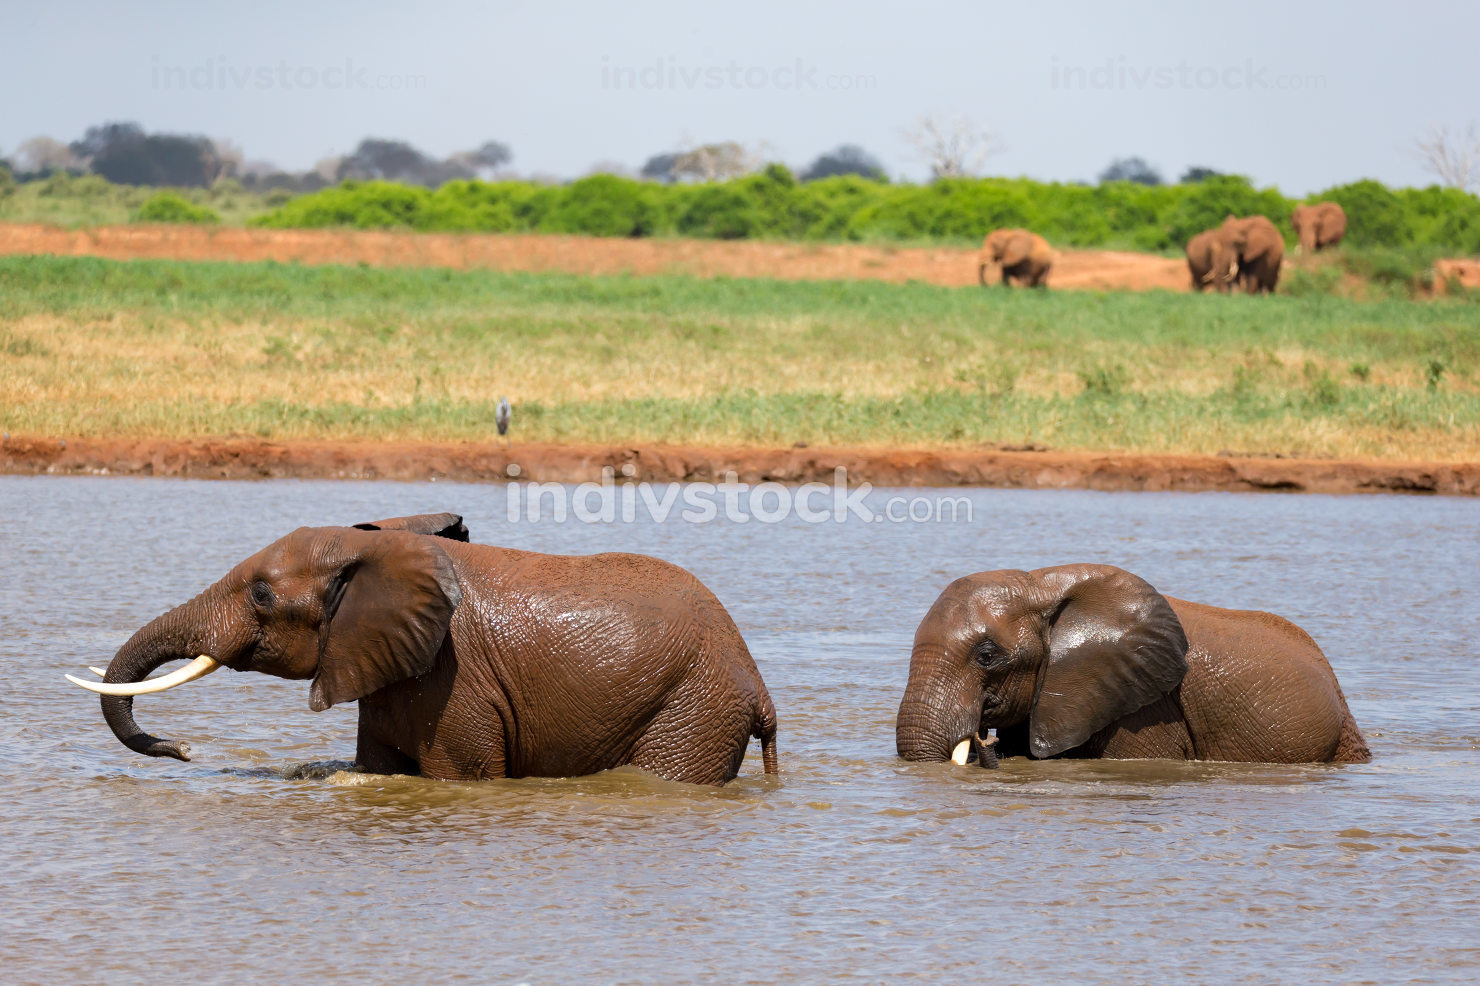 Red elephants bathe in a water hole in the middle of the savanna